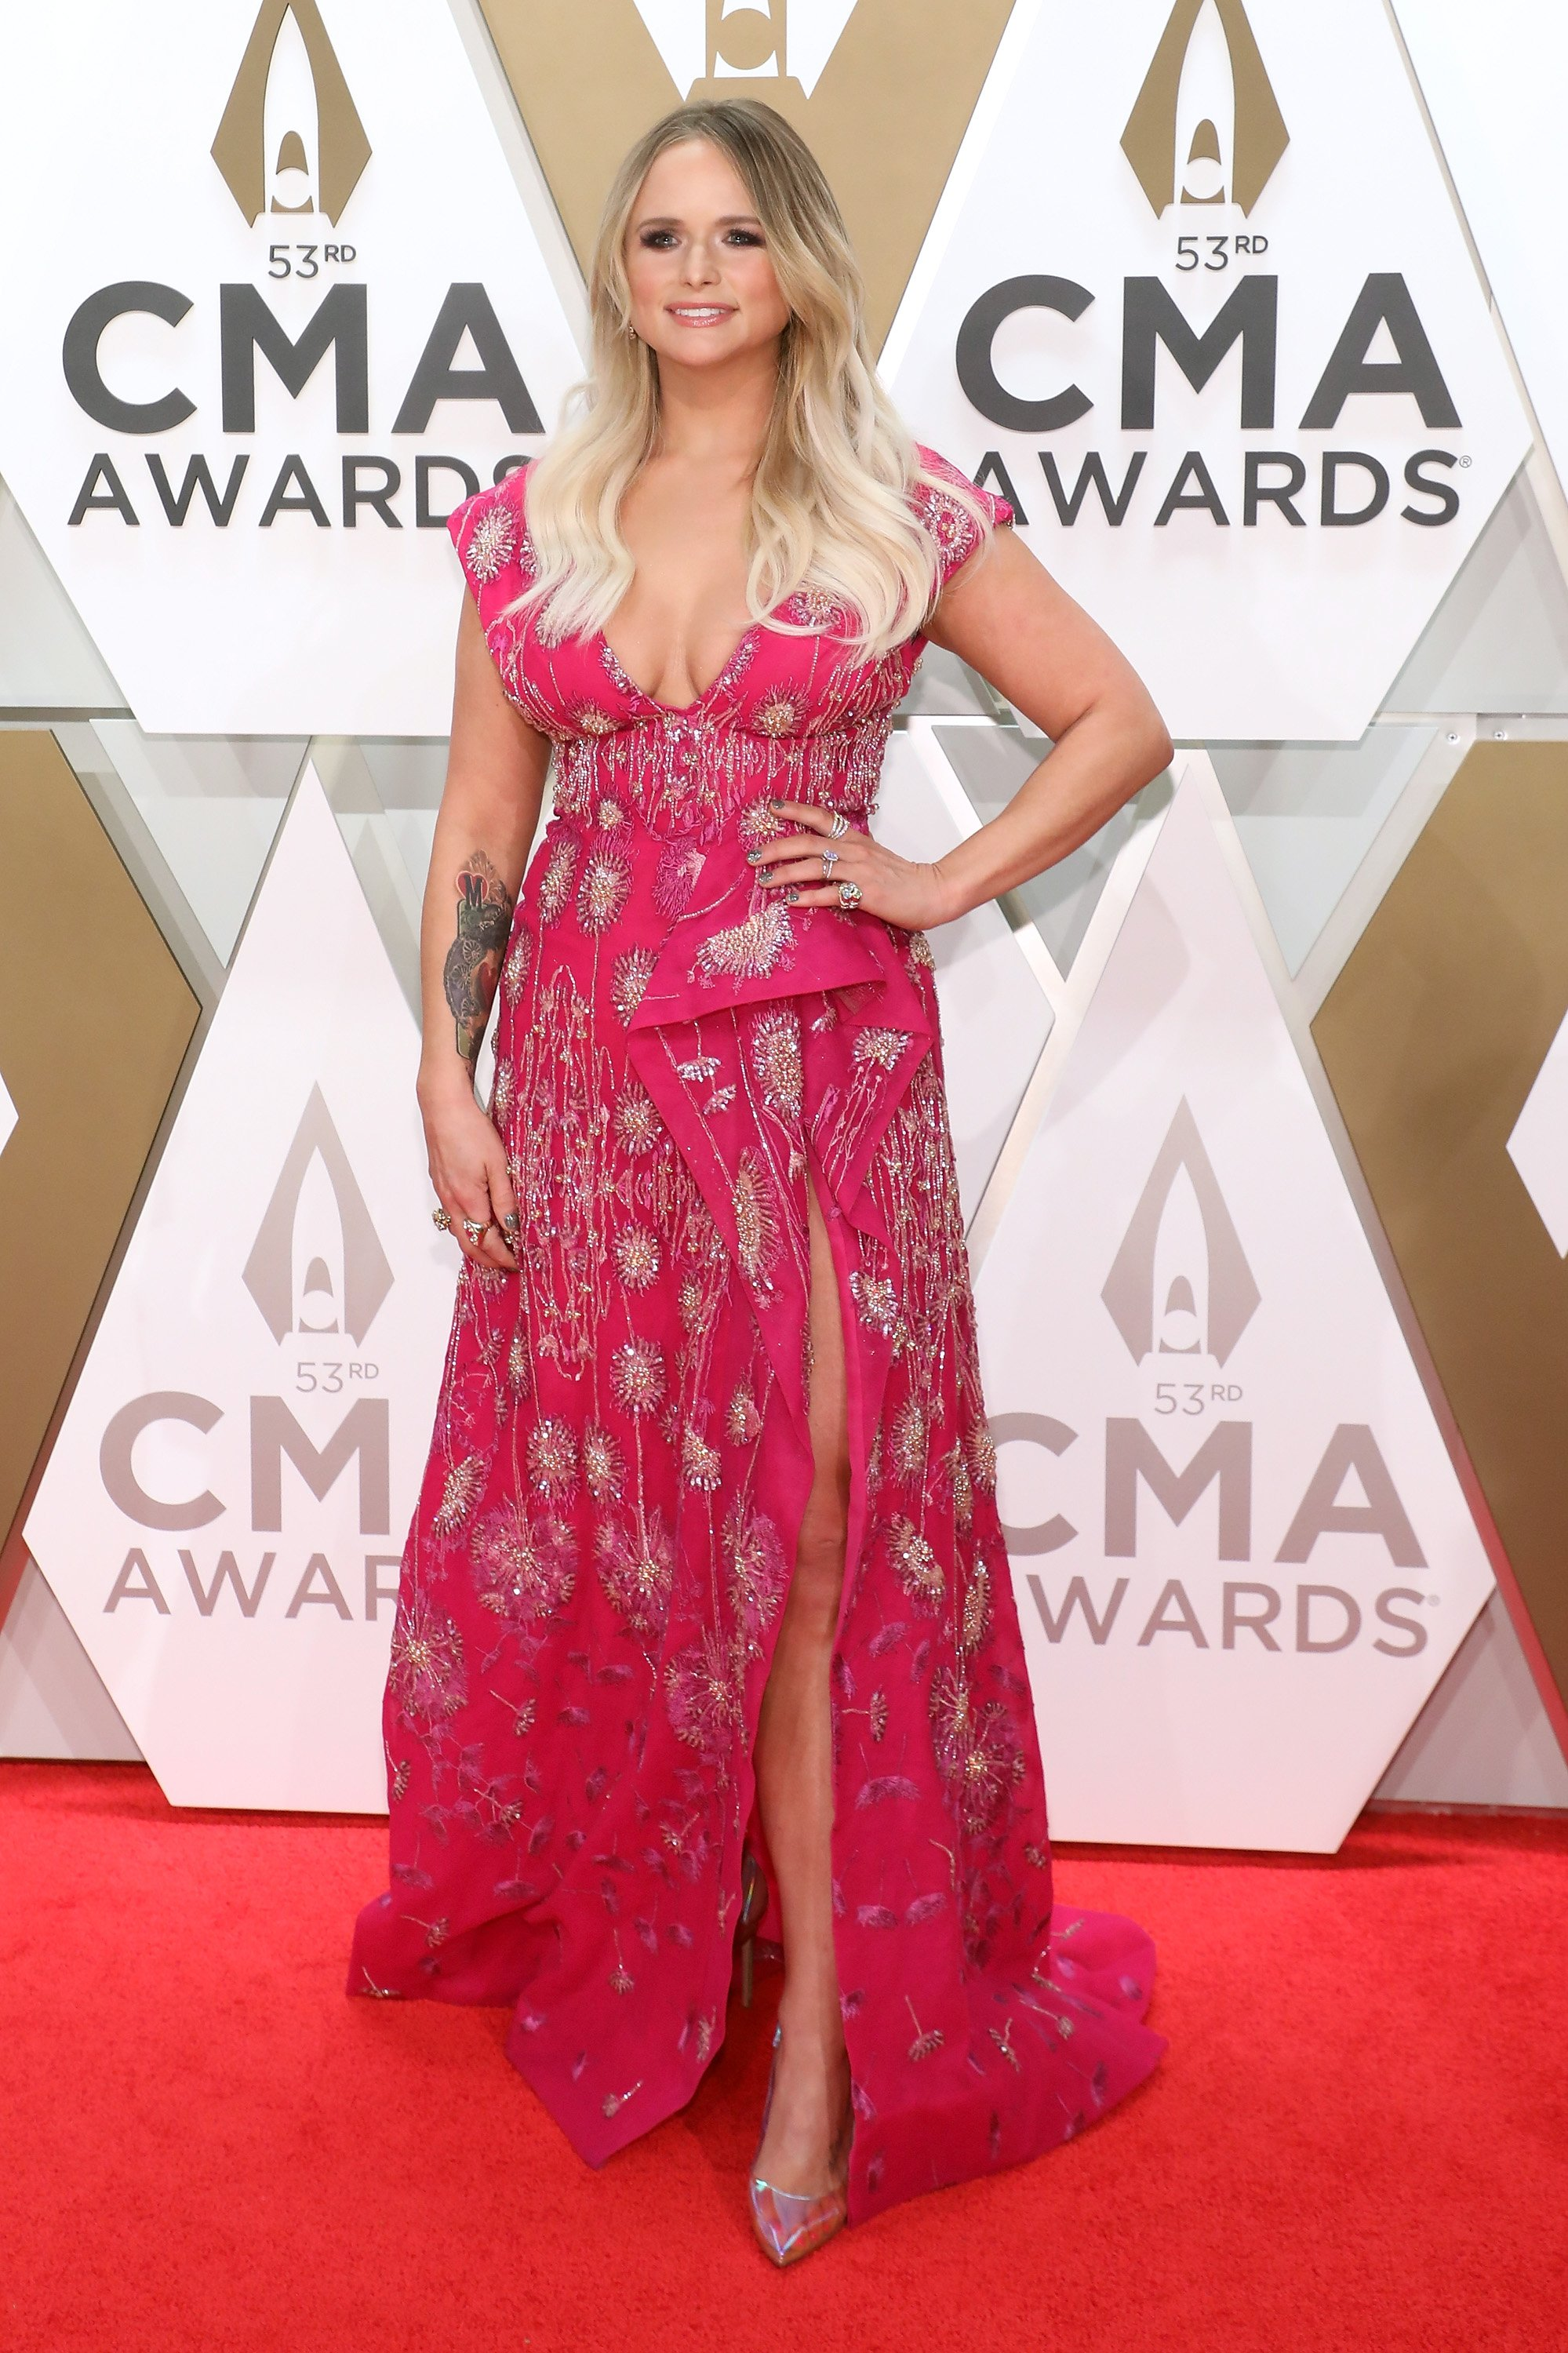 Miranda Lambert attends the CMA Awards in Nashville, Tennessee on November 13, 2019 | Photo: Getty Images